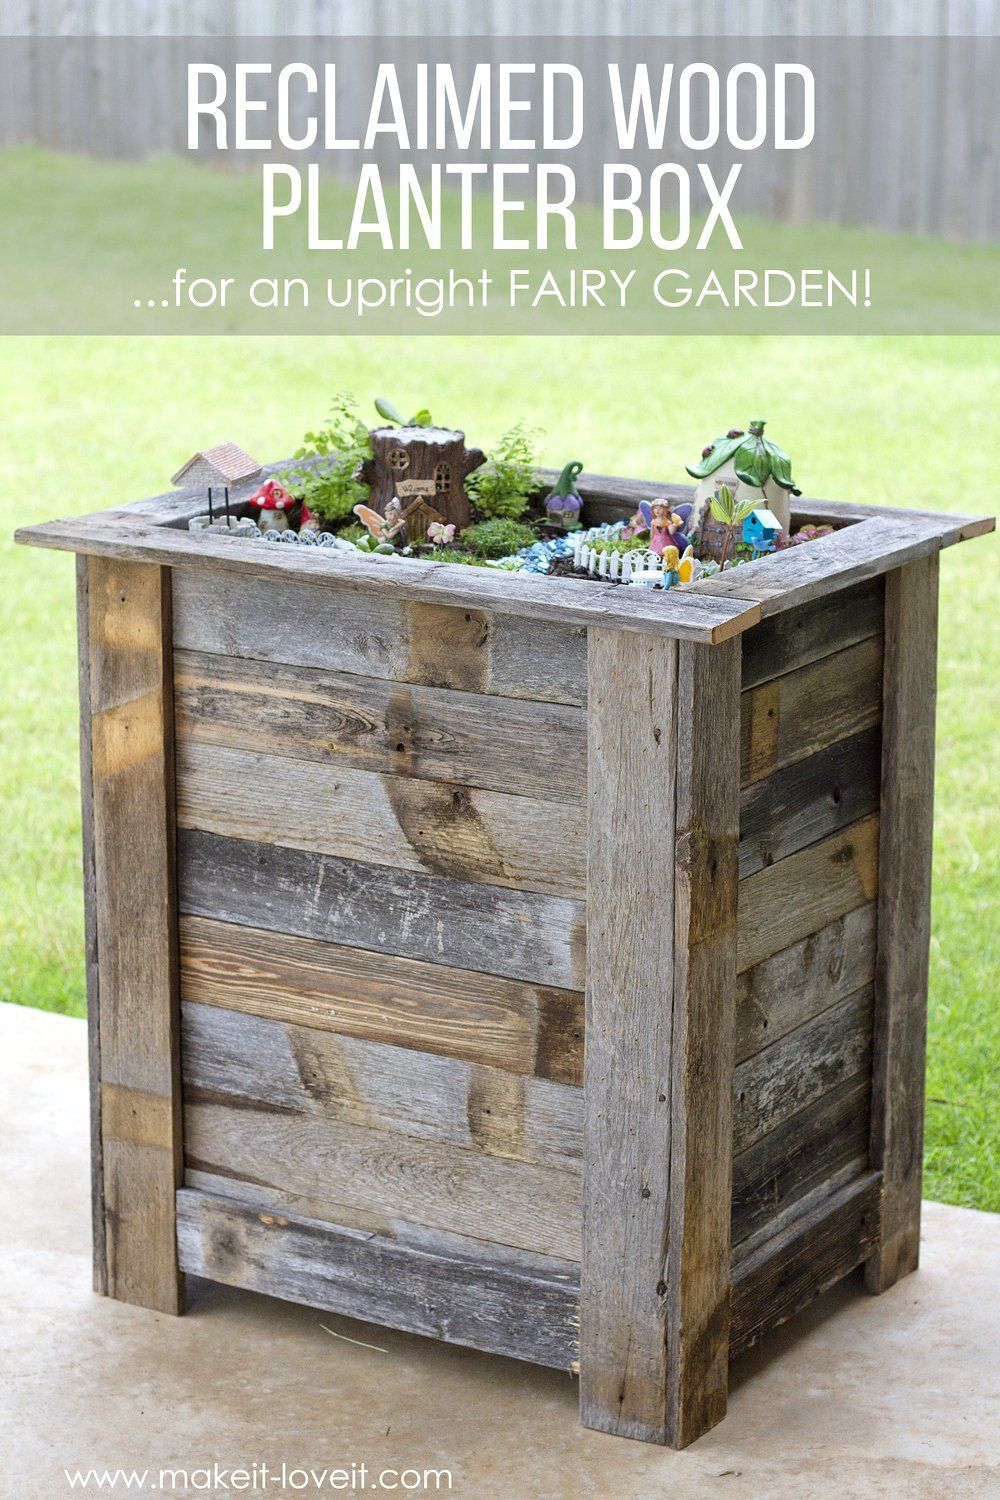 Diy Reclaimed Wood Planter Box For An Upright Fairy Garden Michaelsmakers Make It Love